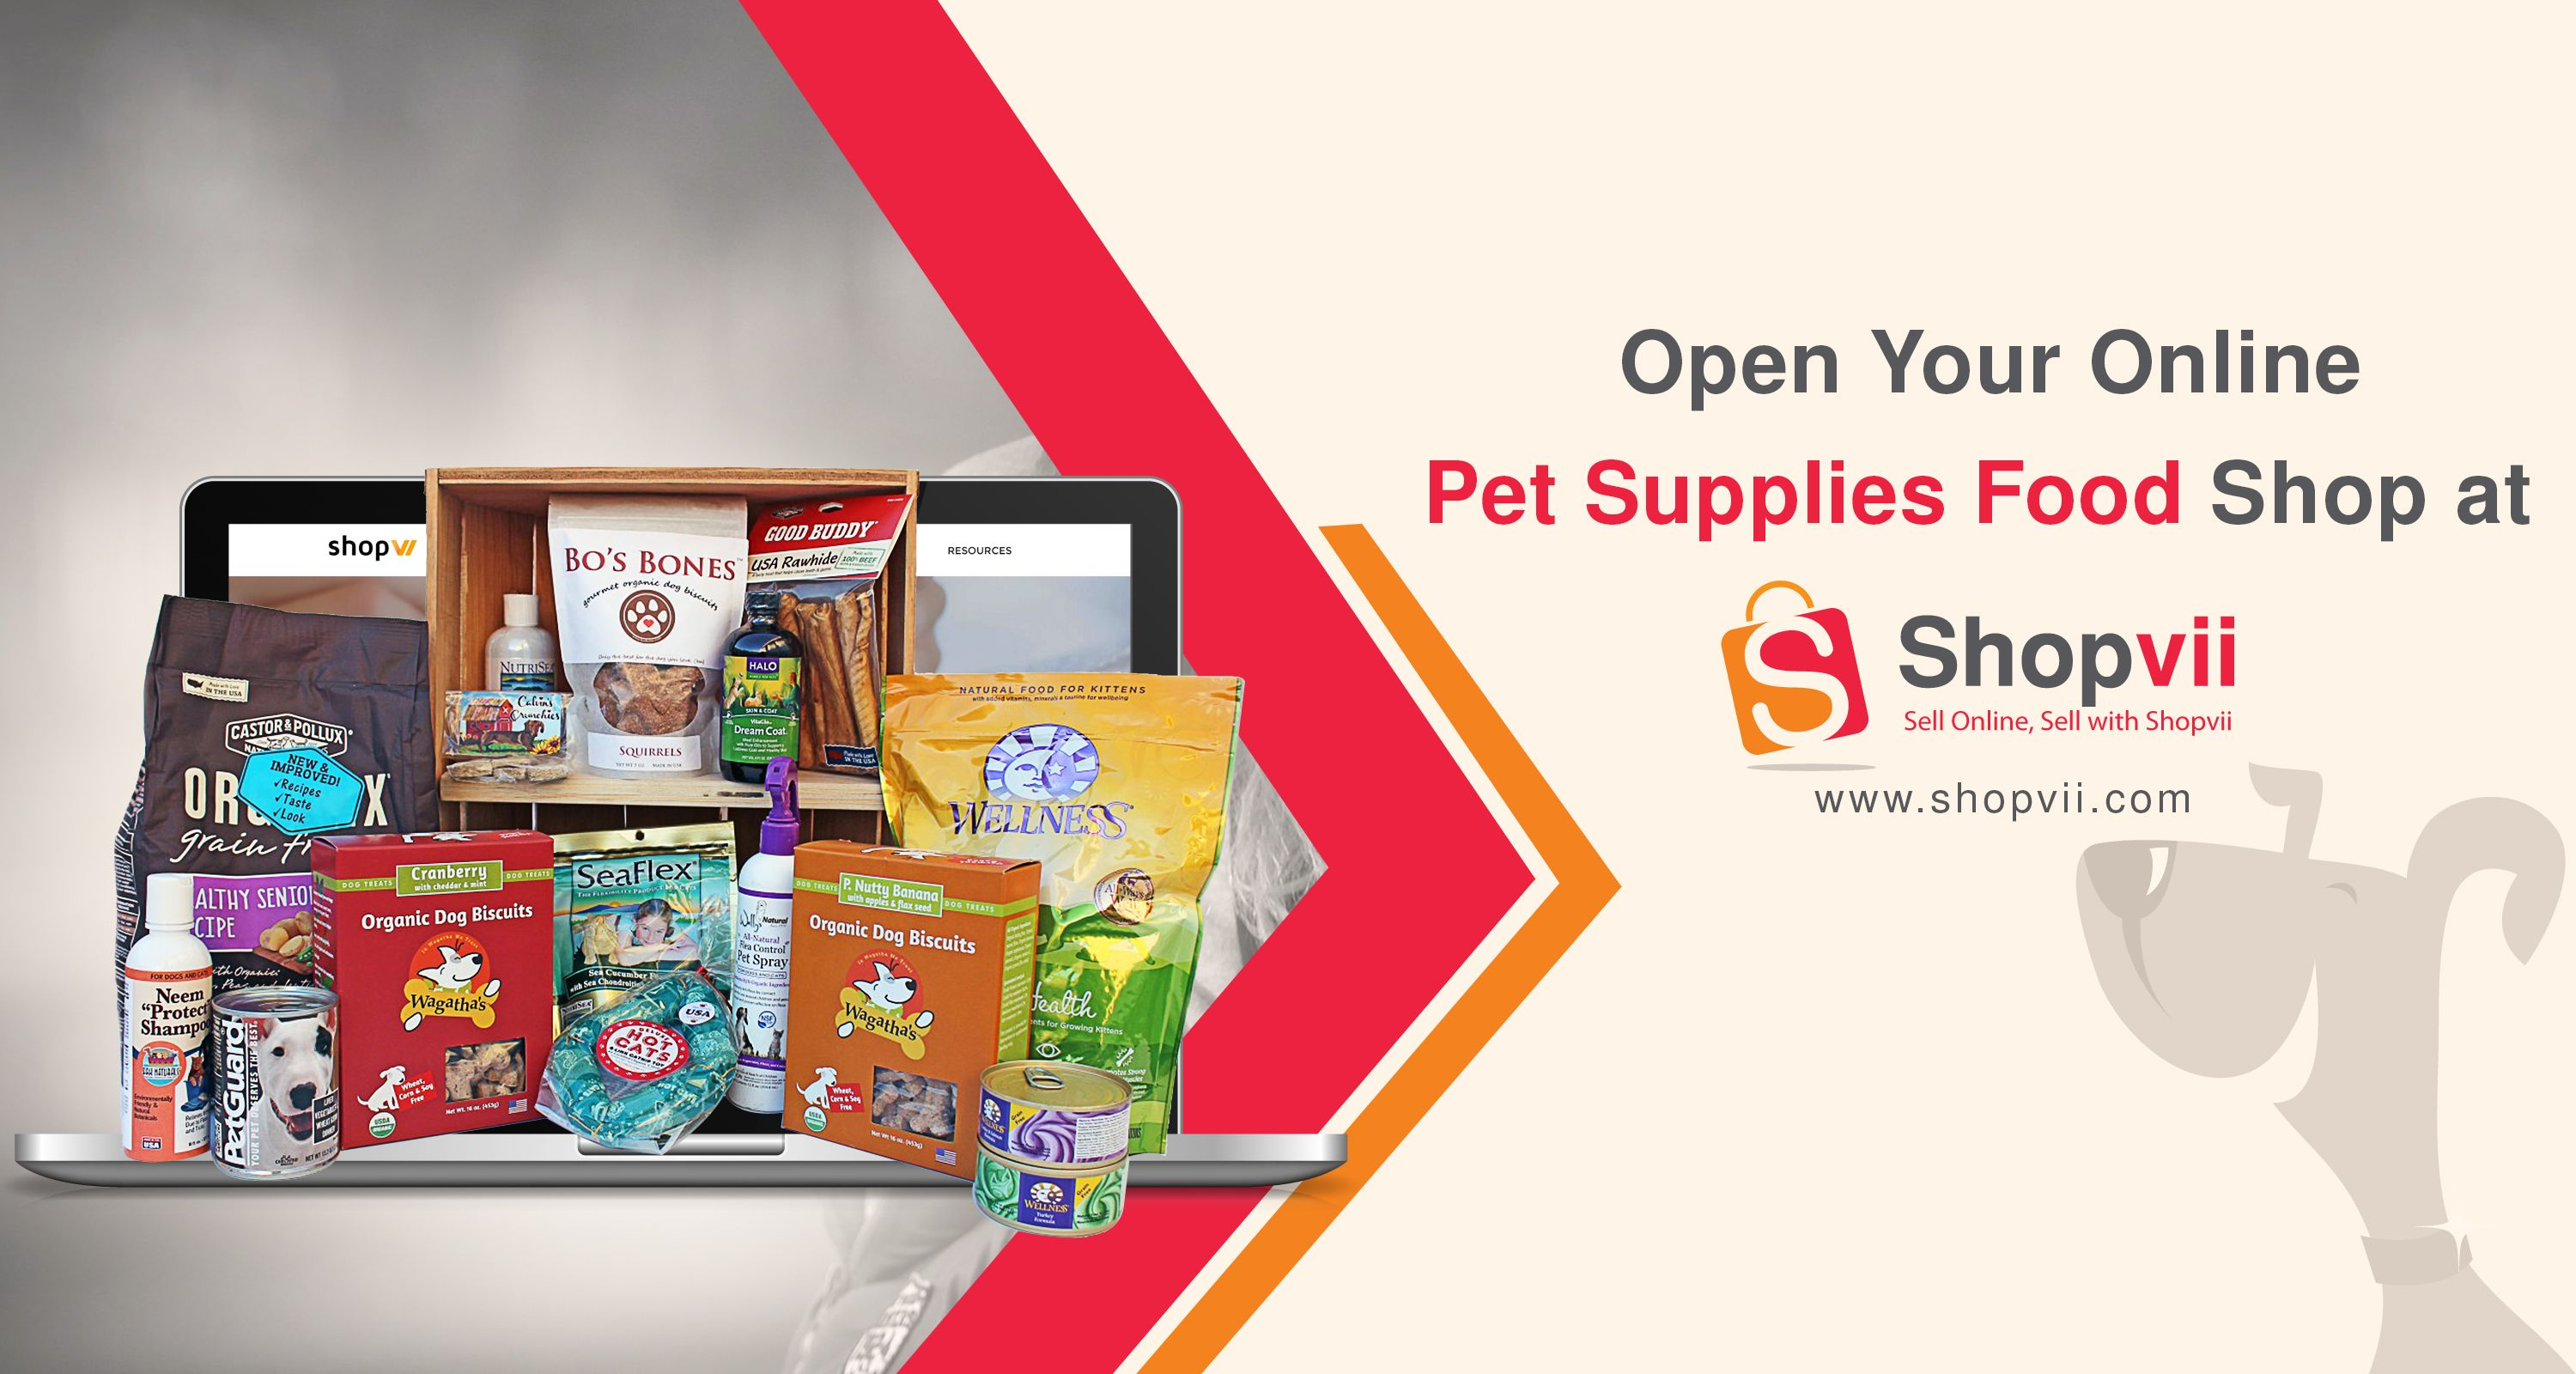 The World Spends 40 Billion A Year On Pet Food So Why Are You Thinking So Much Open Your Own Pet Supplies Food Online Pet Supplies Pet Supplies Pets Online